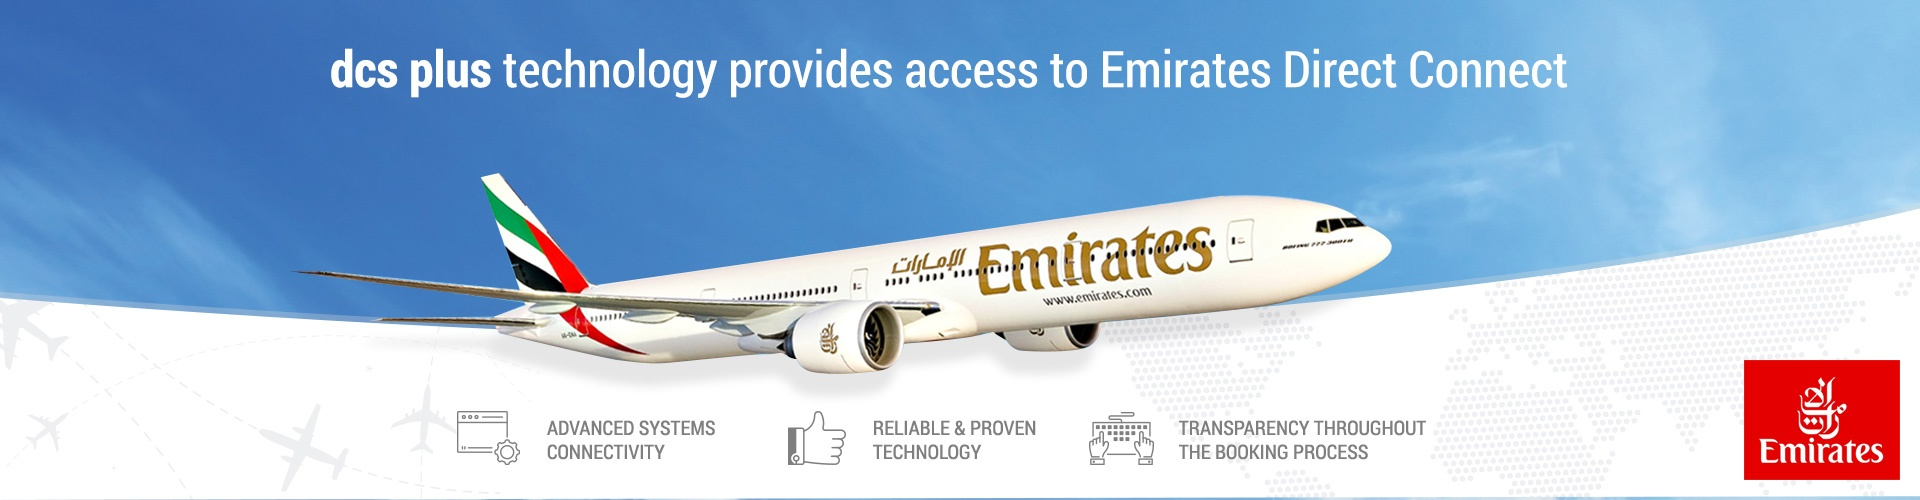 dcs plus technology provides access to Emirates direct connect